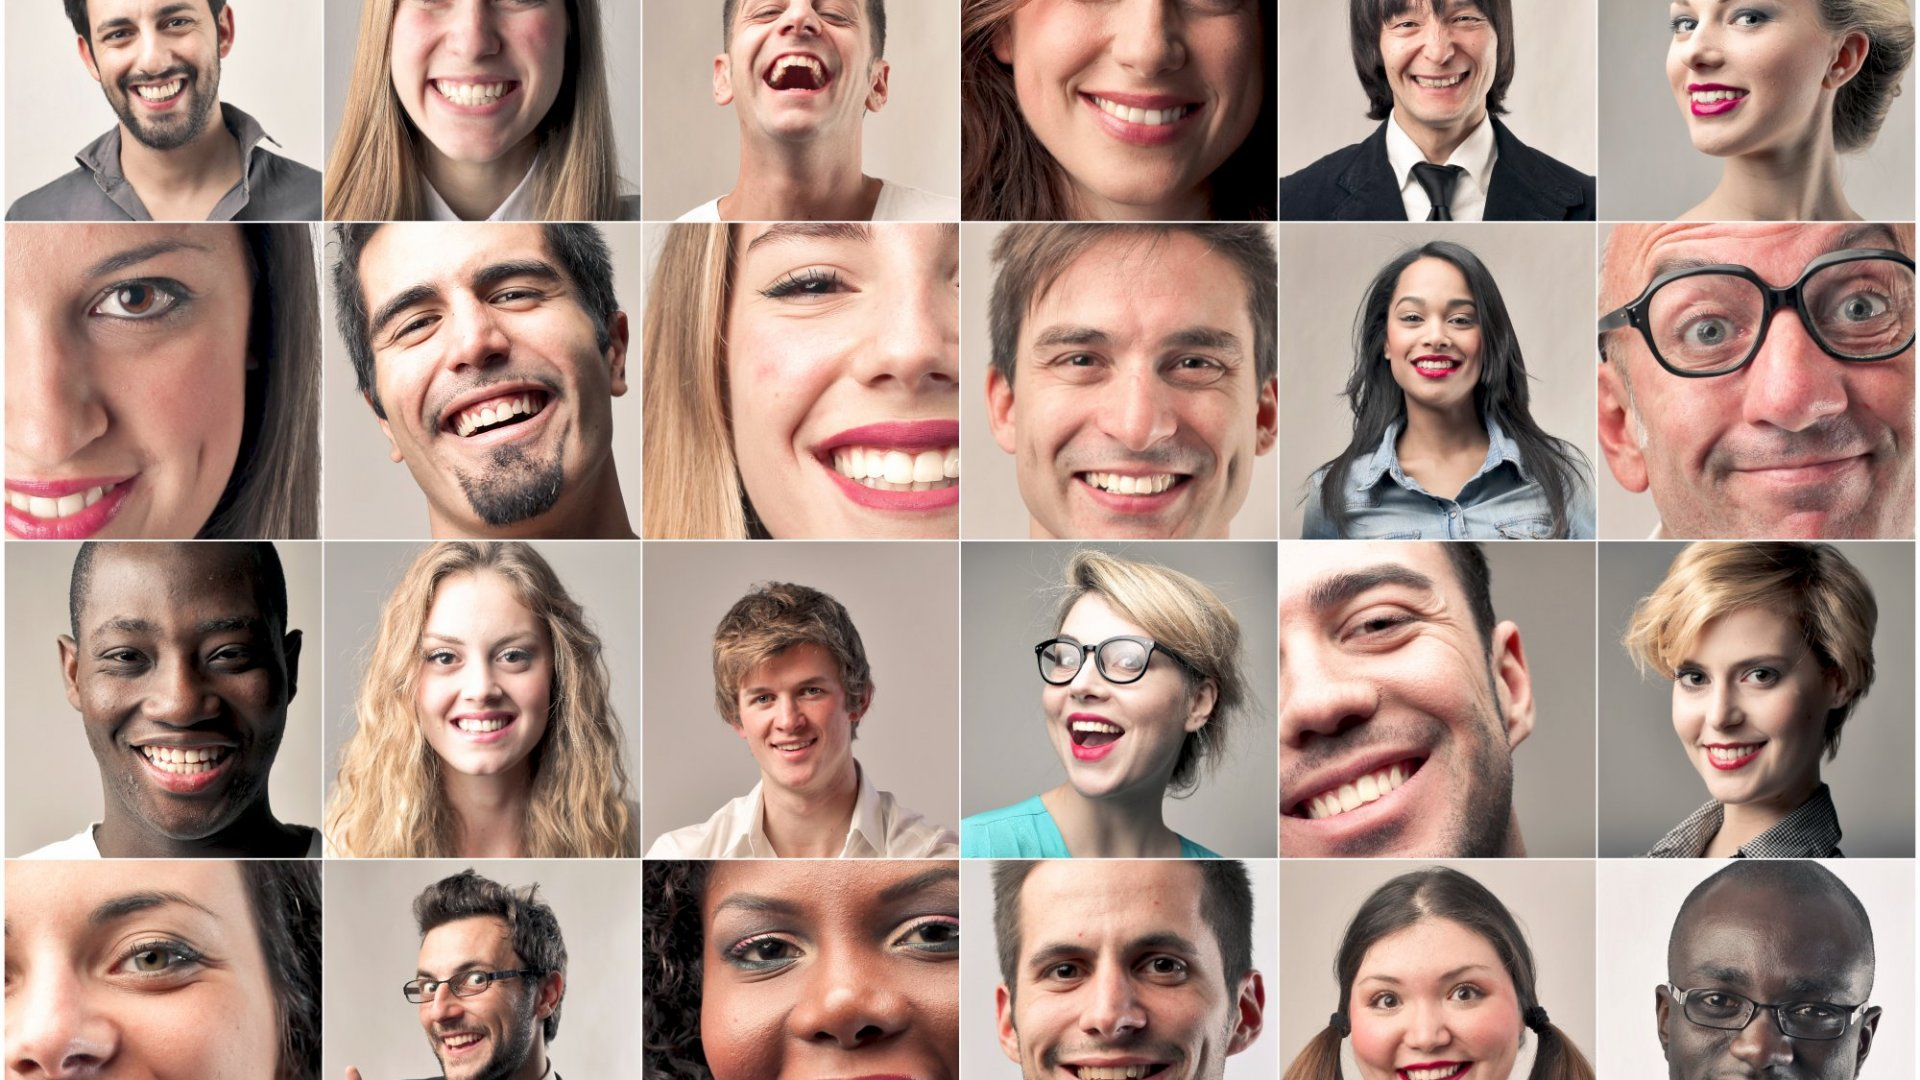 Remarkable You: Here's the Best Way to Stand Out and Make a Lasting Impression